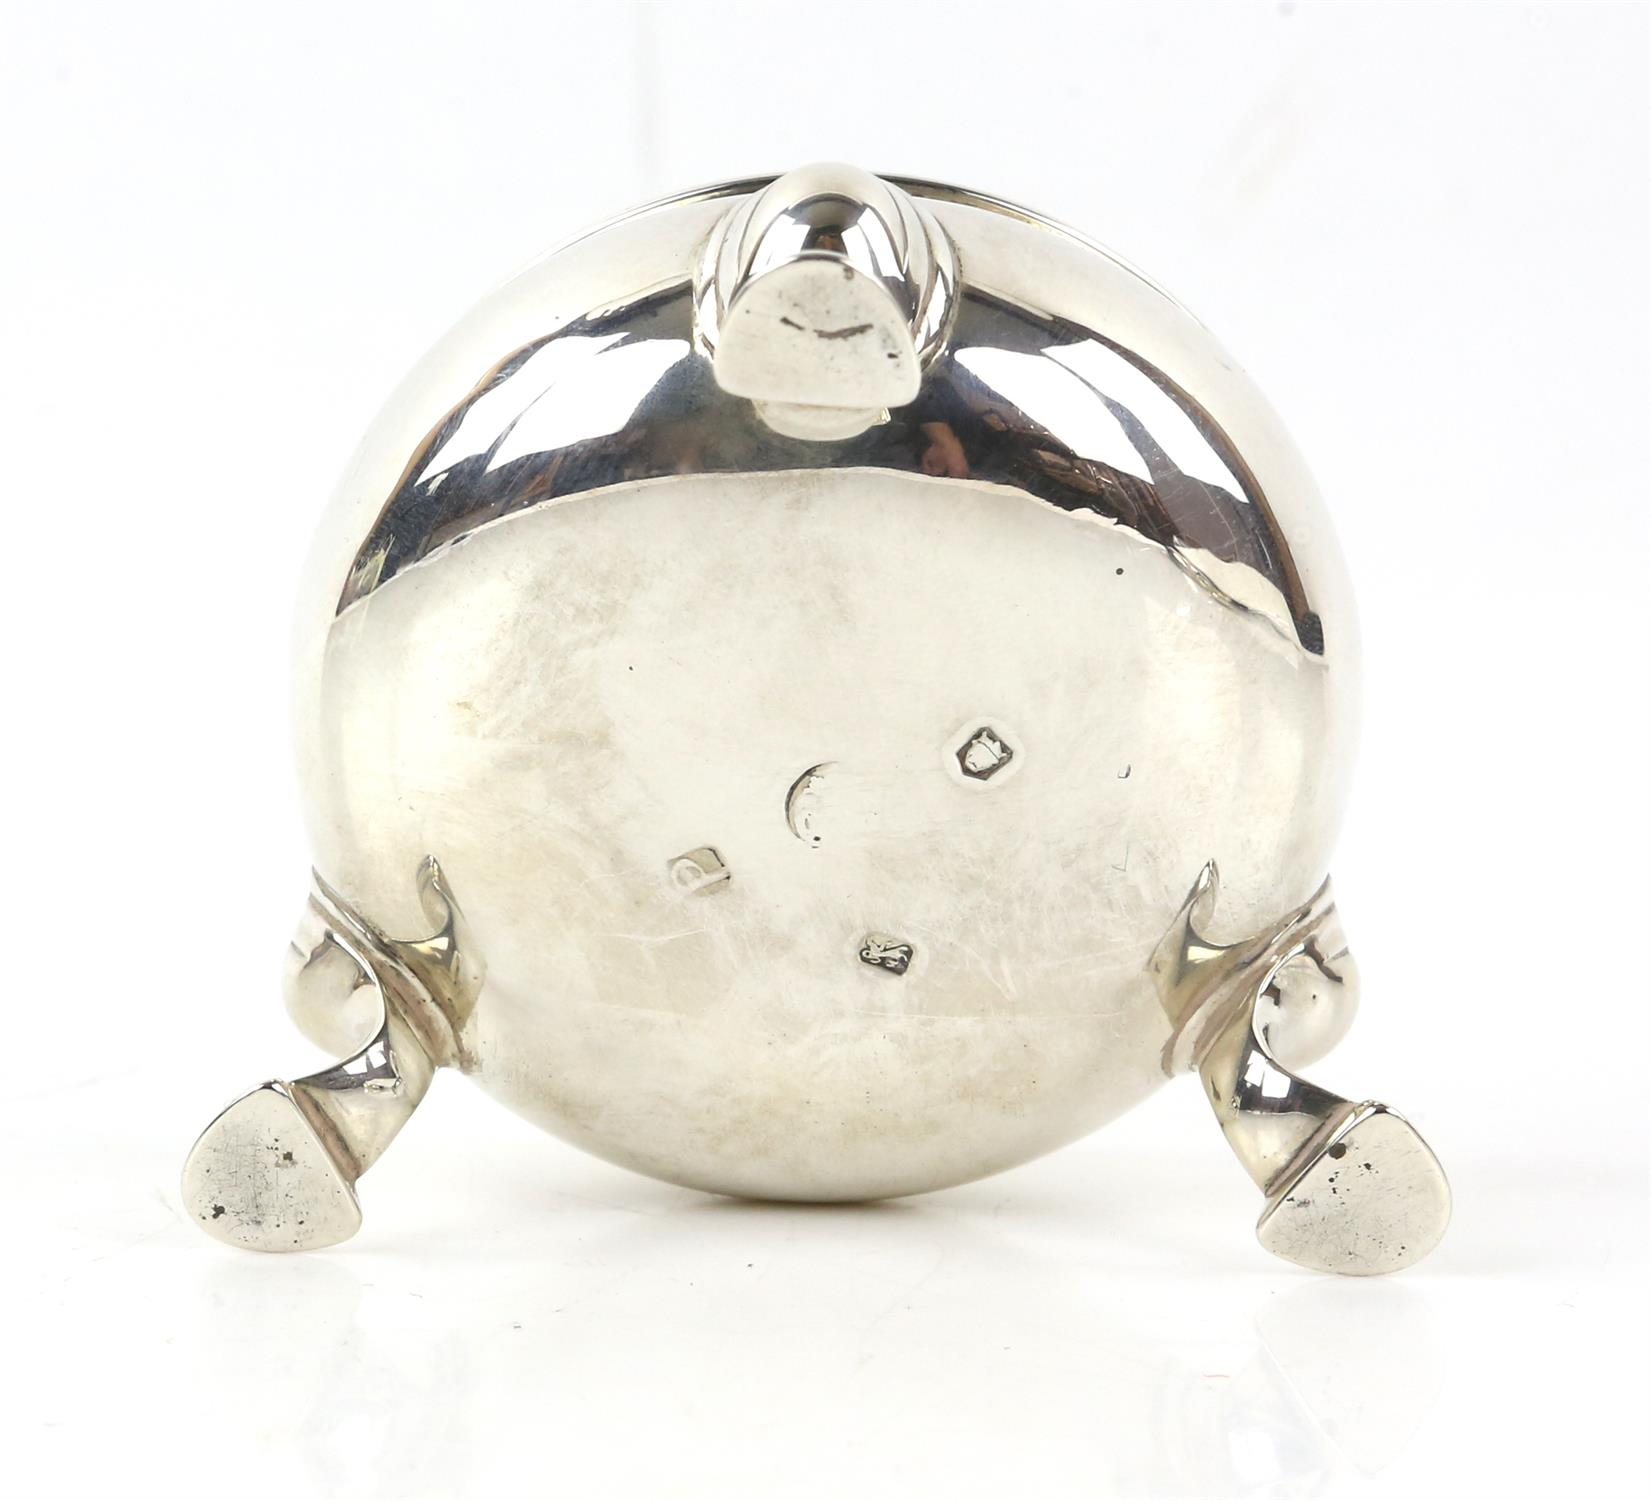 Two matched George III silver cauldron form salts, each on three hoof feet, marks rubbed, - Image 10 of 10